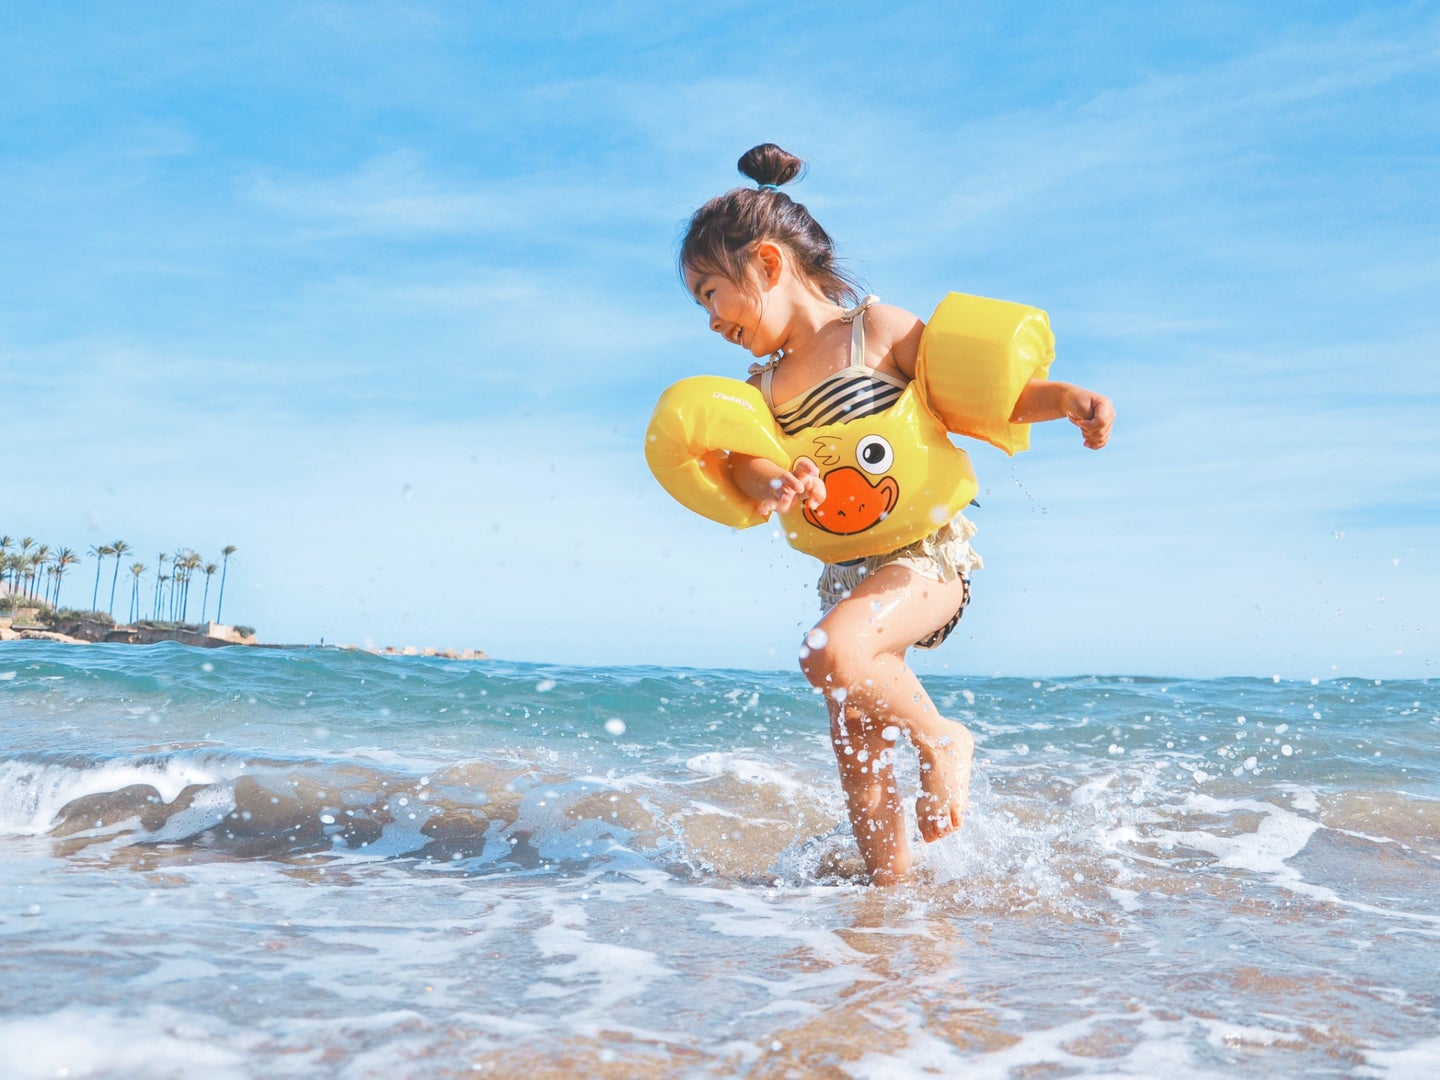 A small child wearing floaties on their arms and waist while playing in the surf of a tropical beach.